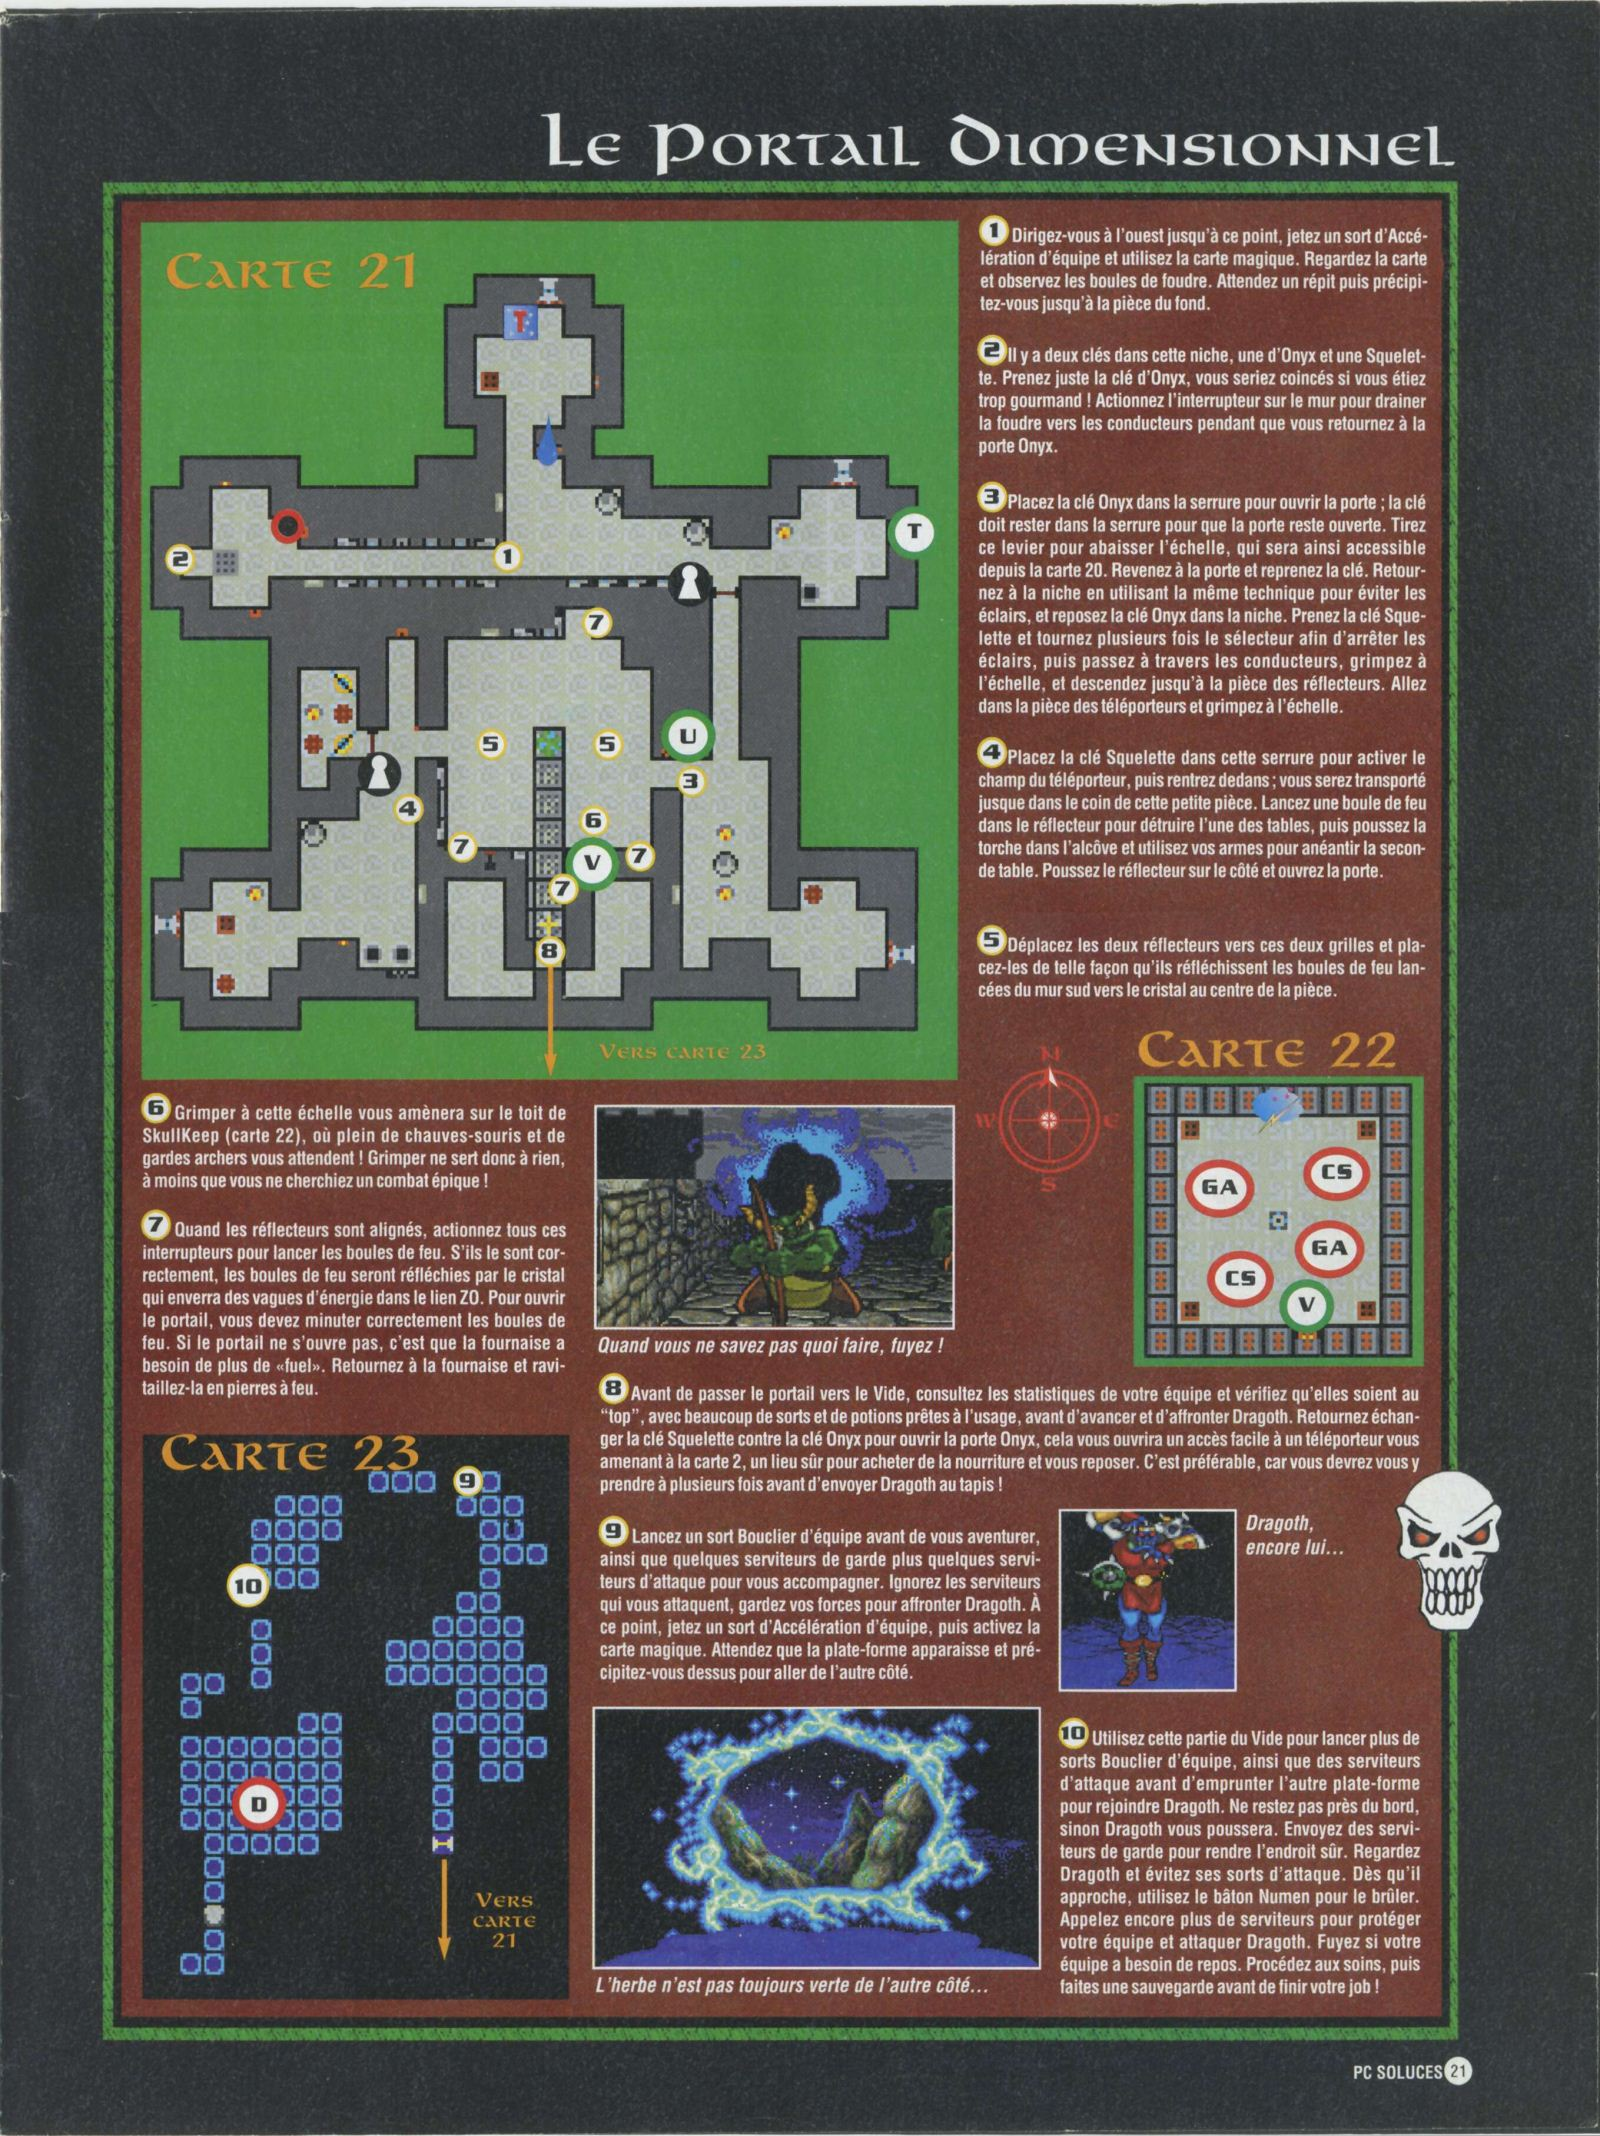 Dungeon Master II solution published in French magazine 'PC Soluces', Issue#1, February-March 1996, Page21